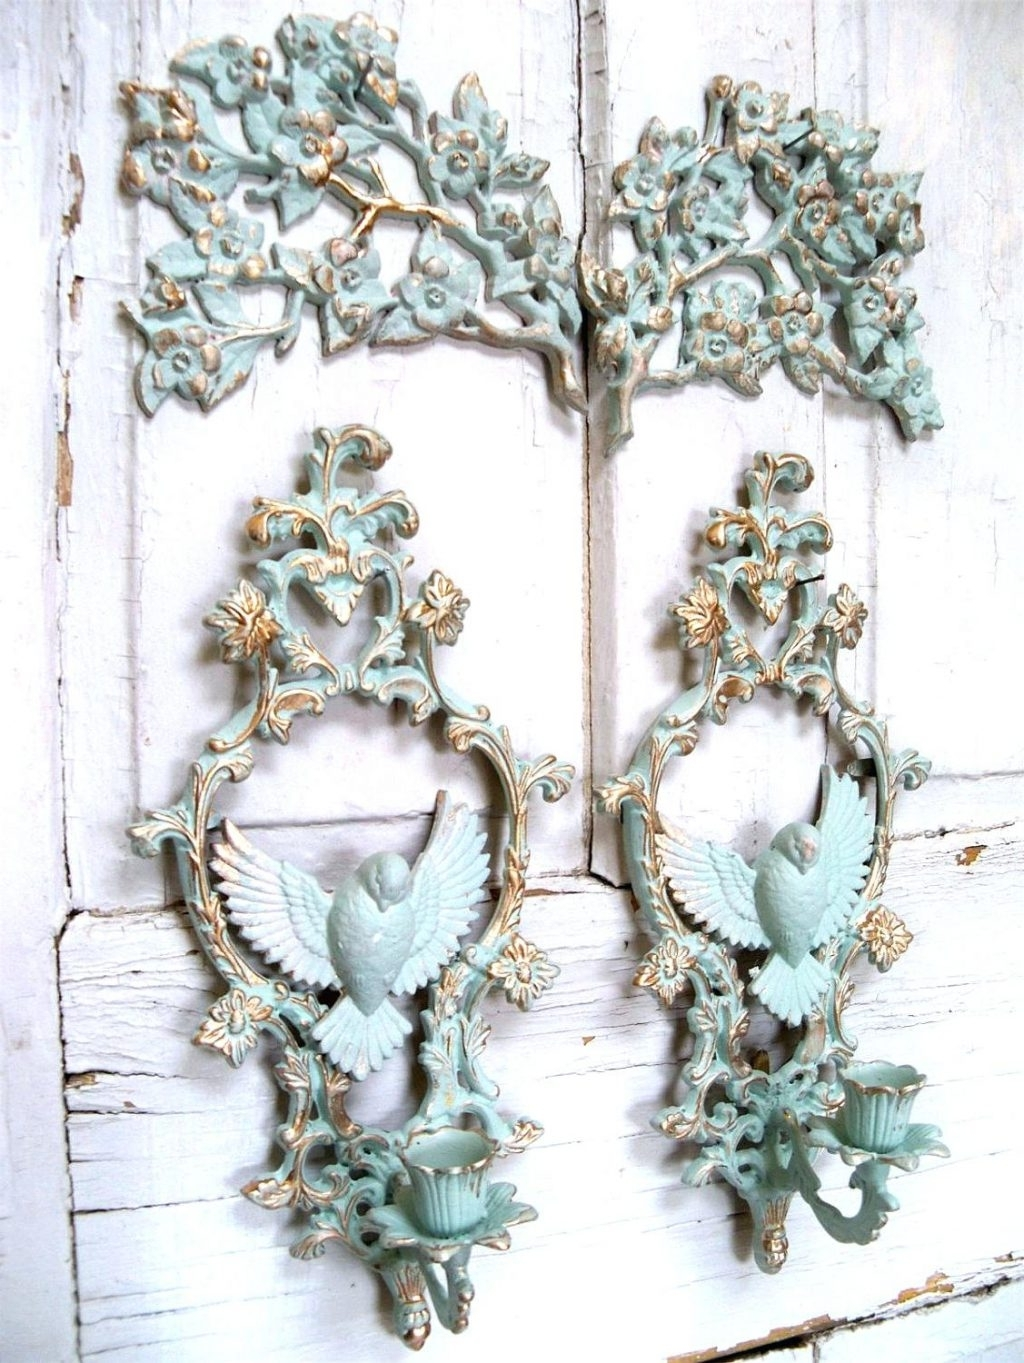 Preferred Wall Arts ~ Shabby Chic Wall Art Australia Shabby Chic Wall Art In Australia Wall Accents (View 10 of 15)